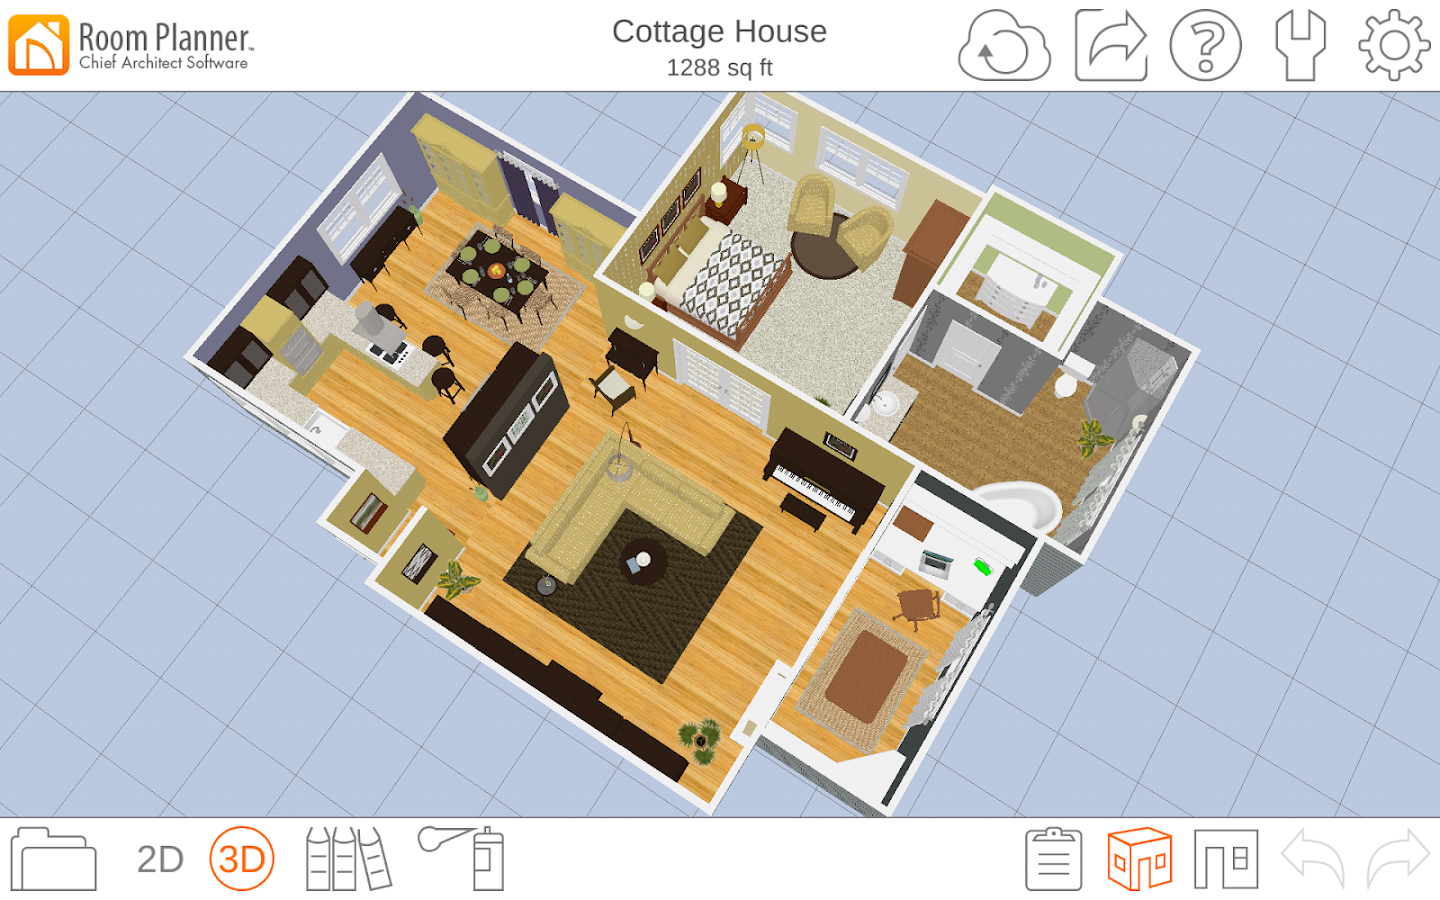 Room planner home design android apps on google play for Room planner